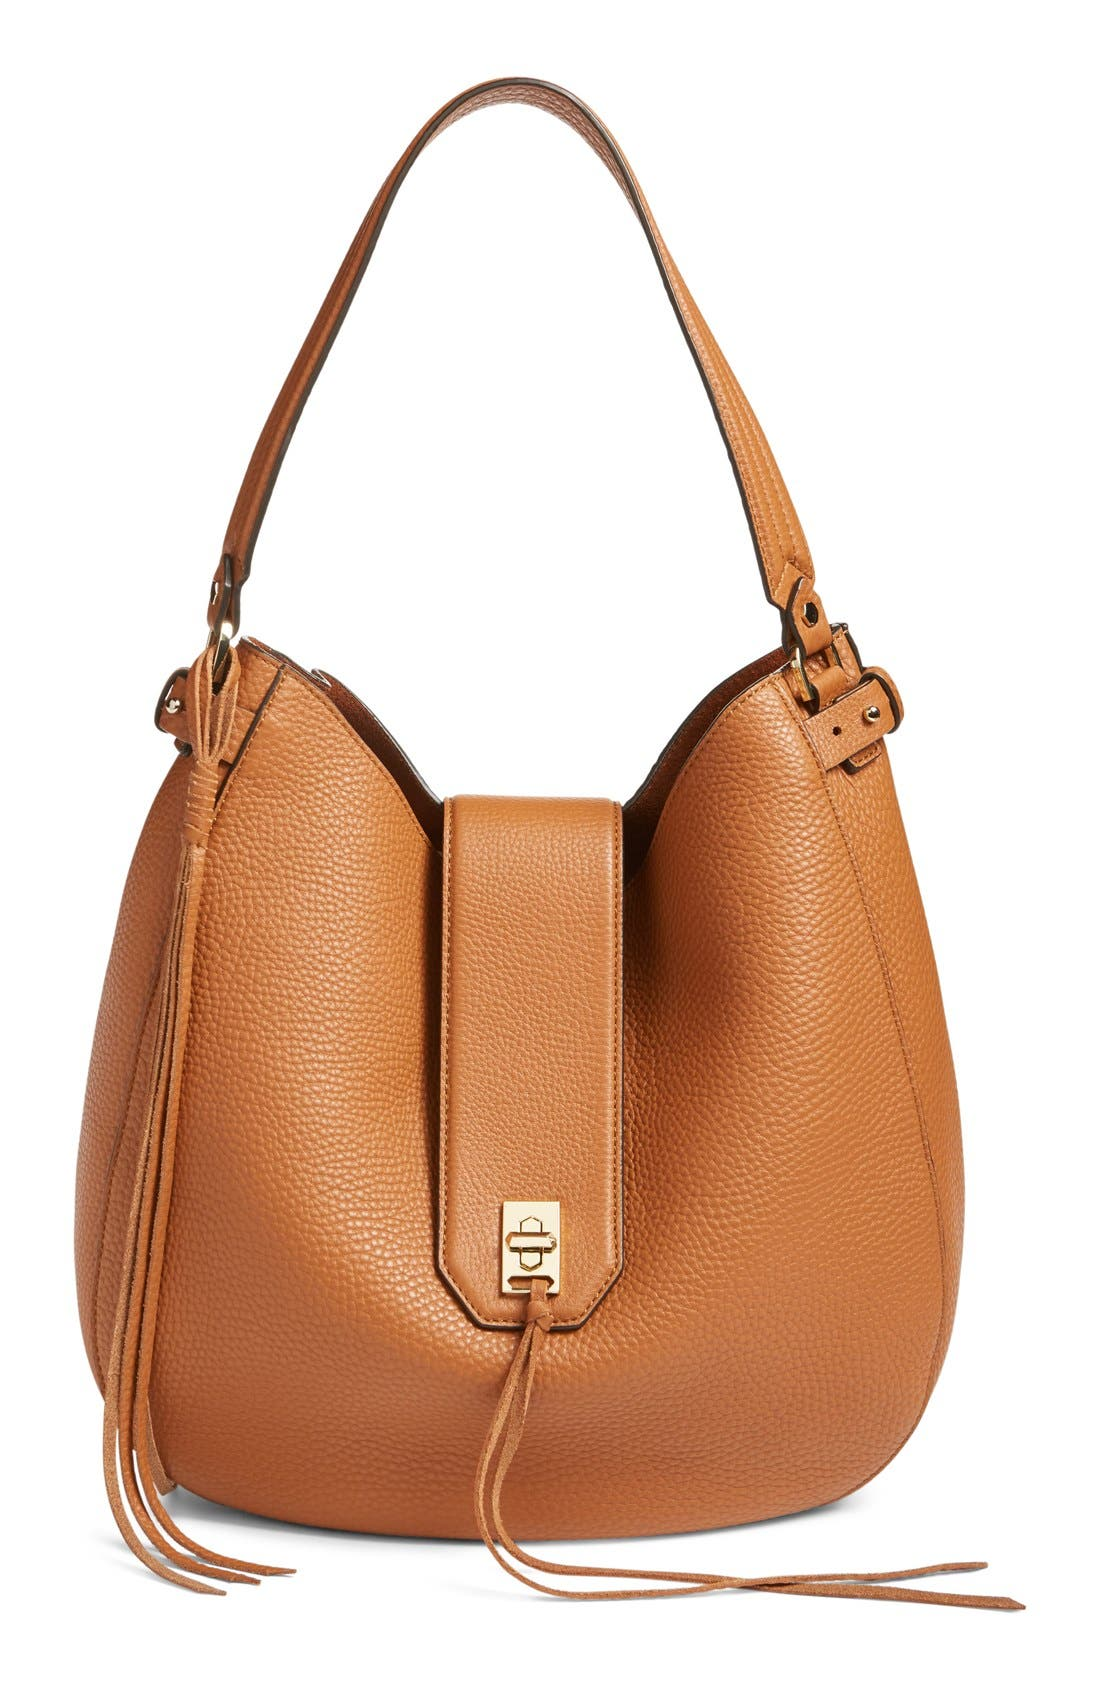 Main Image - Rebecca Minkoff 'Darren' Leather Hobo Bag